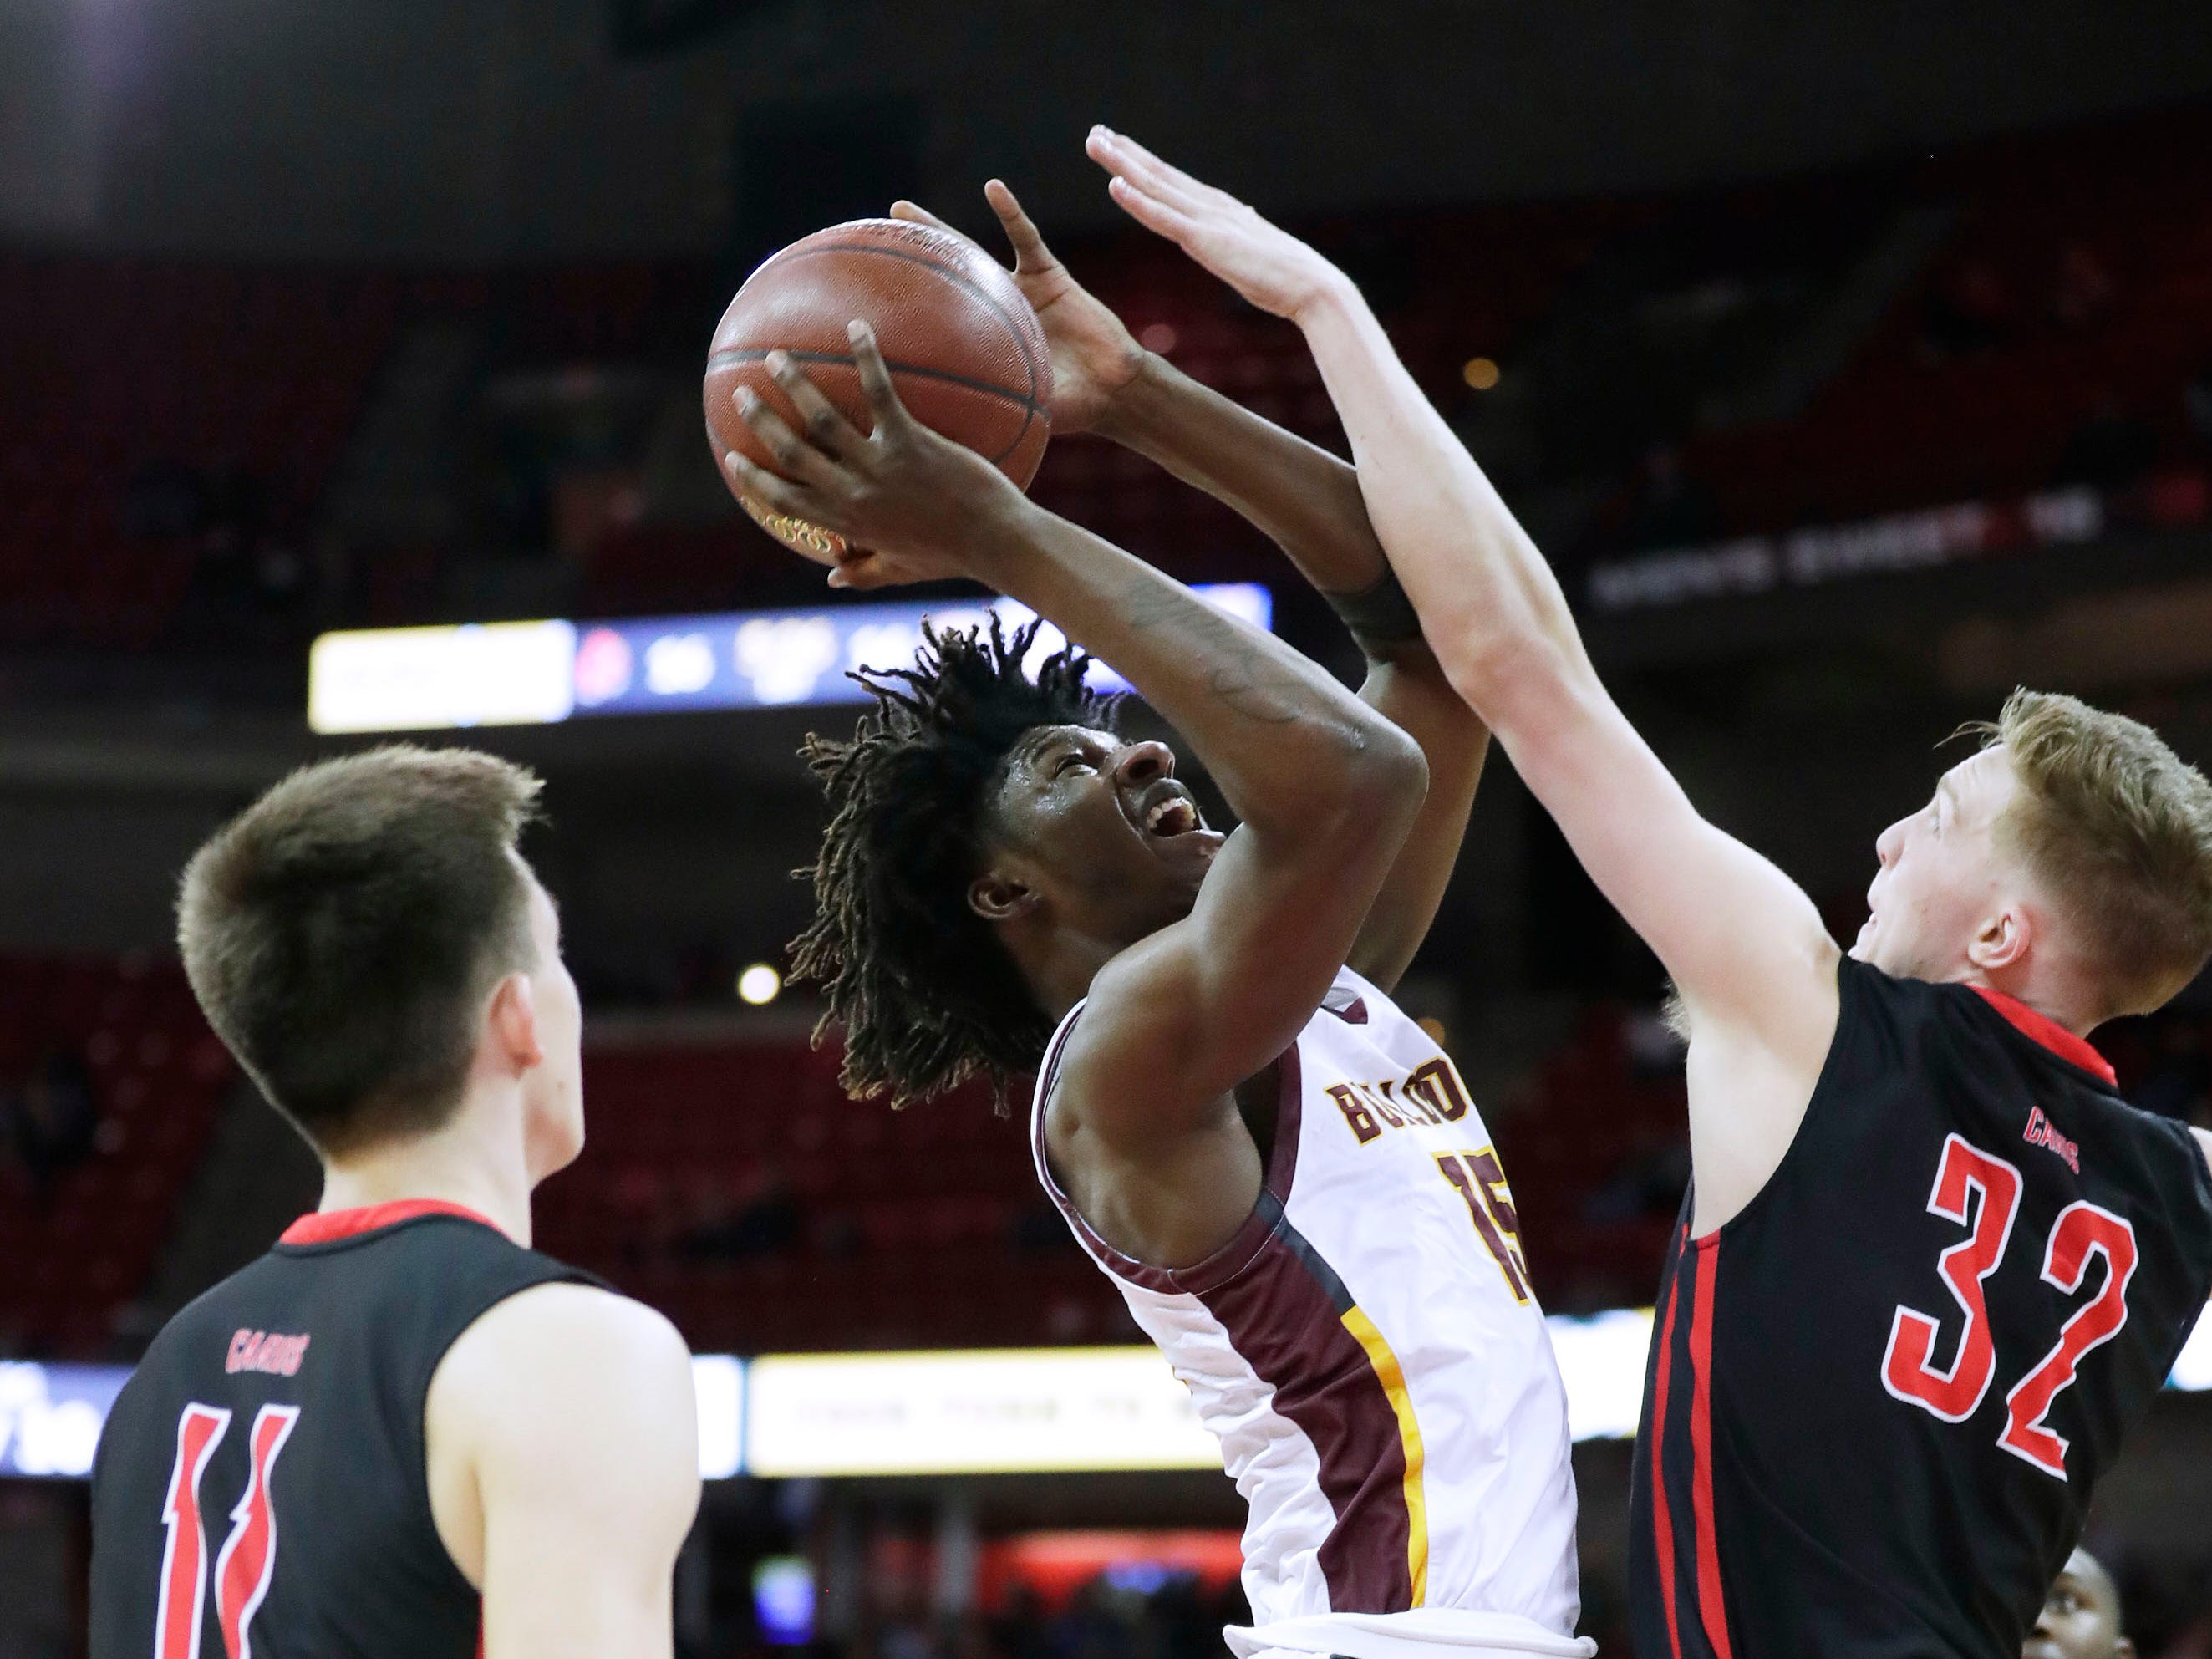 West Allis Central's Shilo Bowles gets a shot off over Sun Prairie's Alex Voight during the Division 1 semifinal game Friday night.